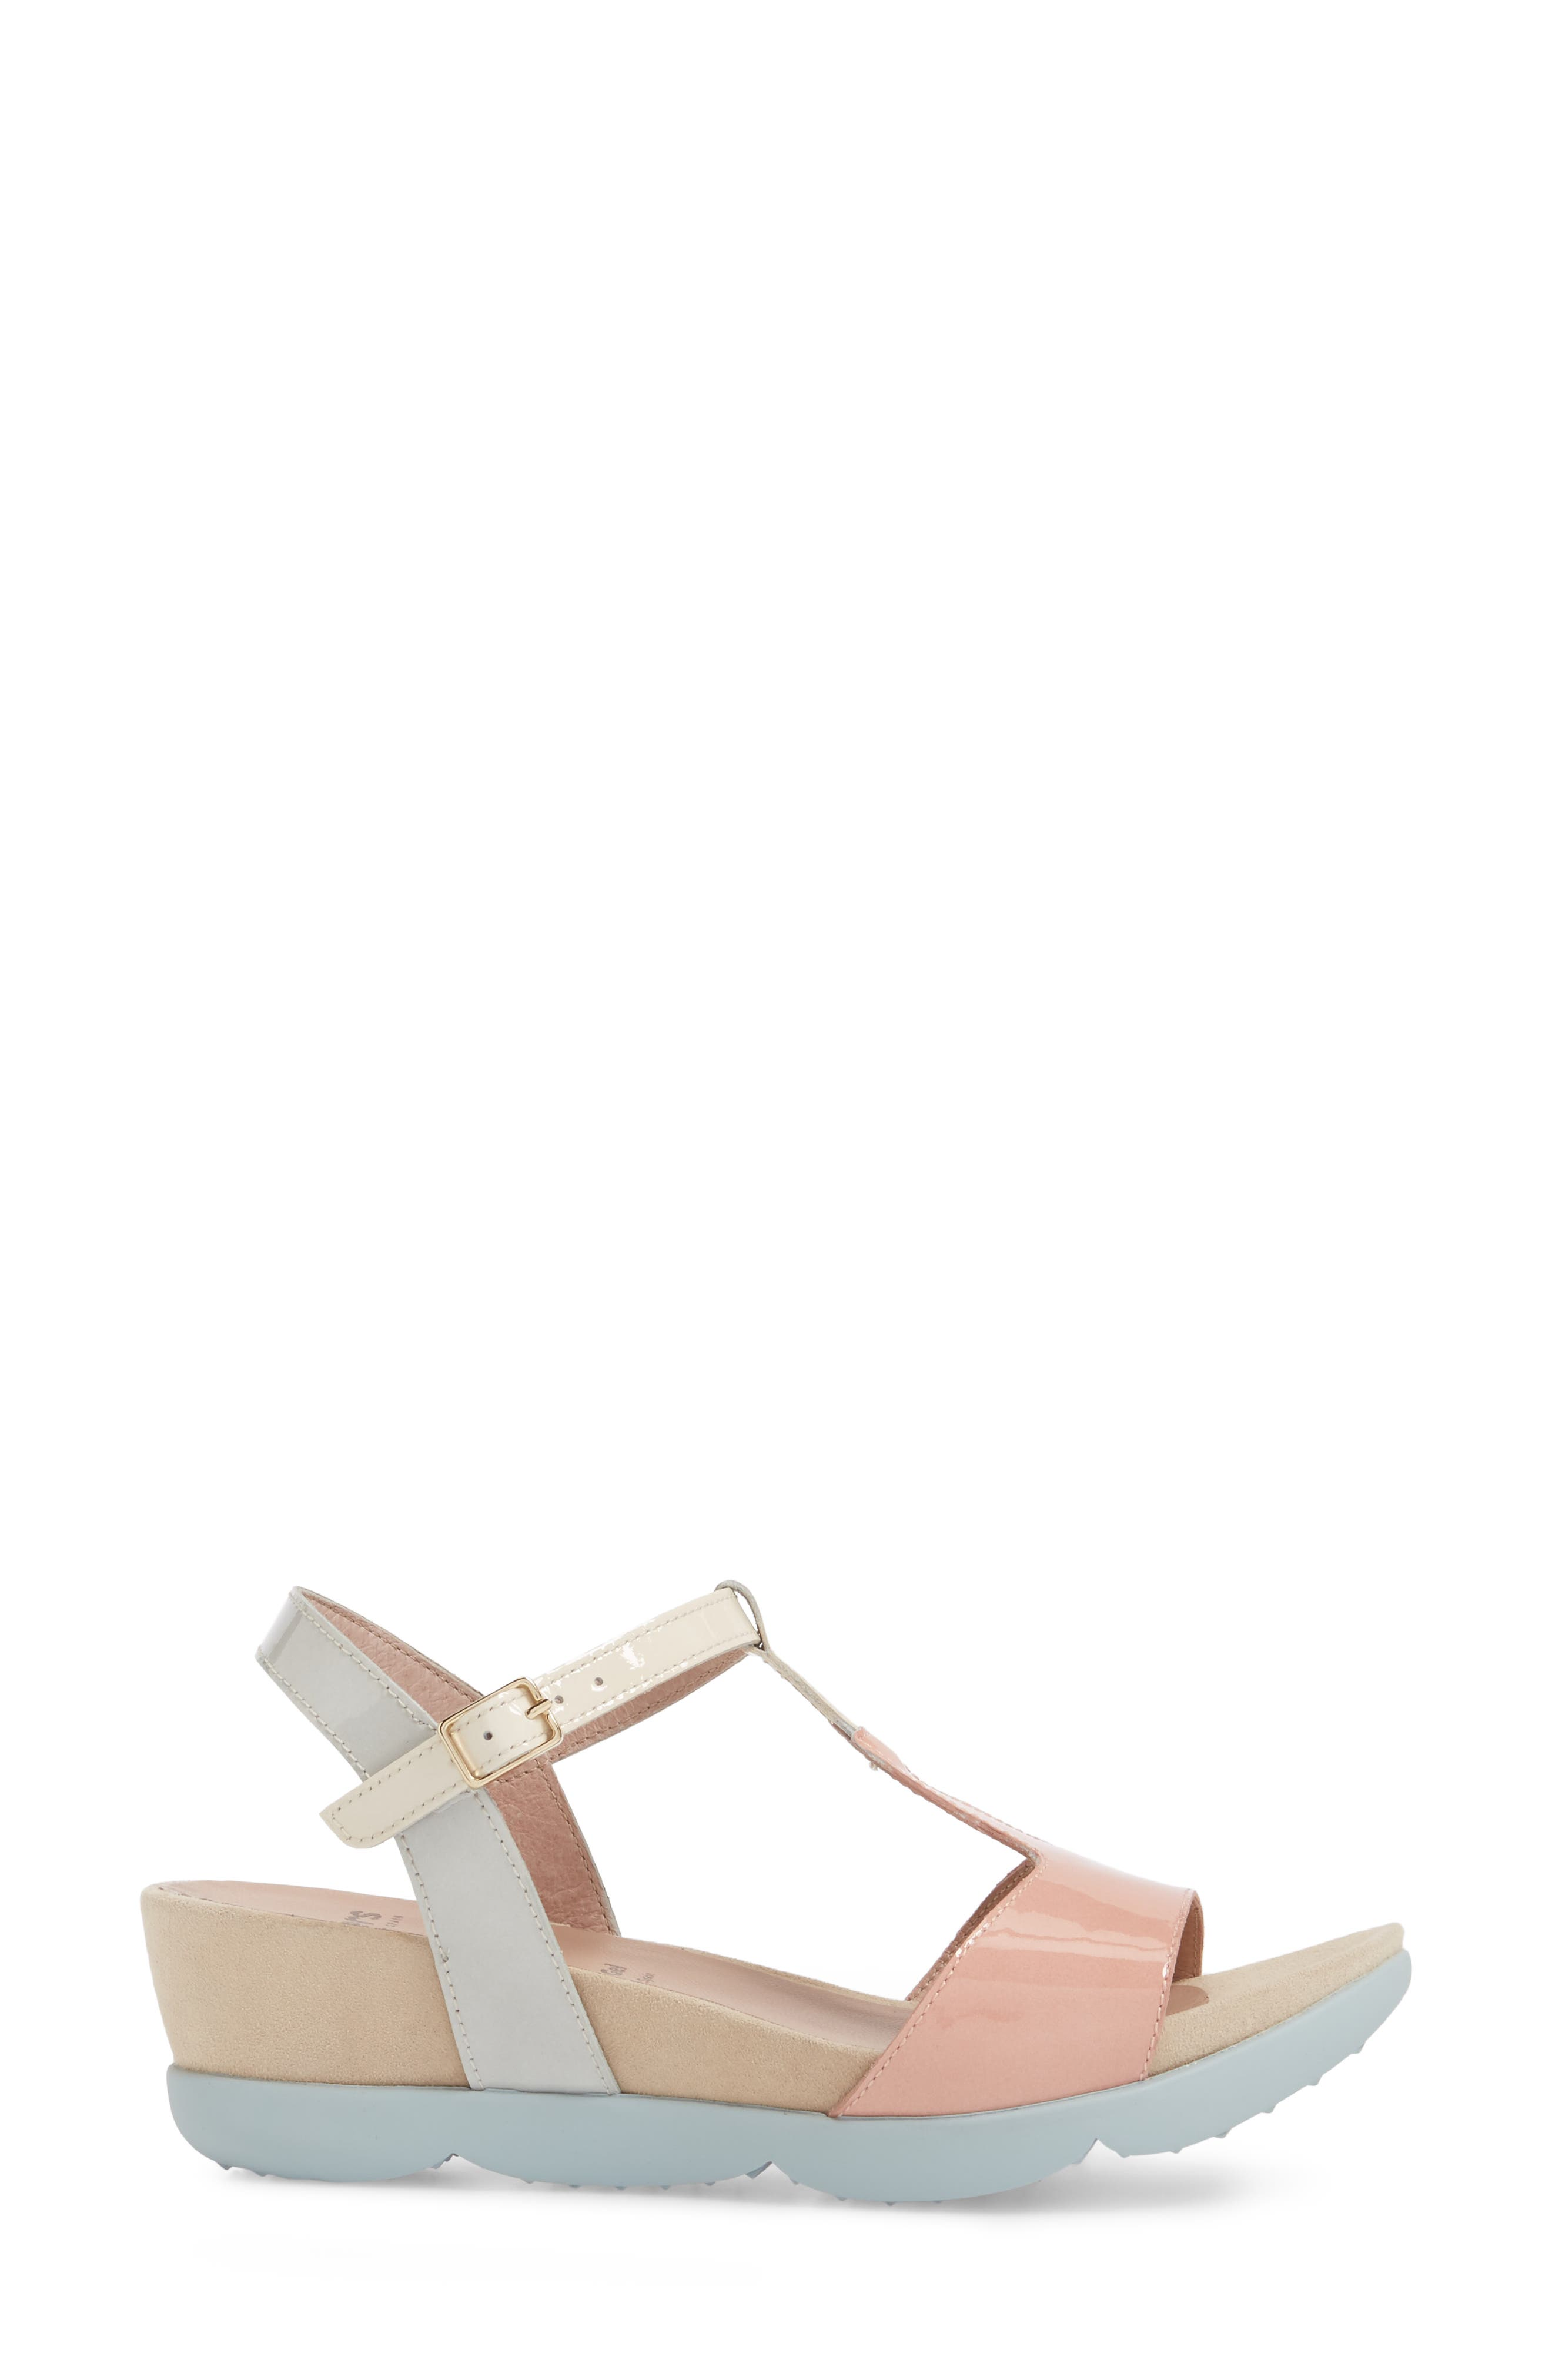 Wedge Sandal,                             Alternate thumbnail 3, color,                             Nude/ Off/ Light Grey Leather